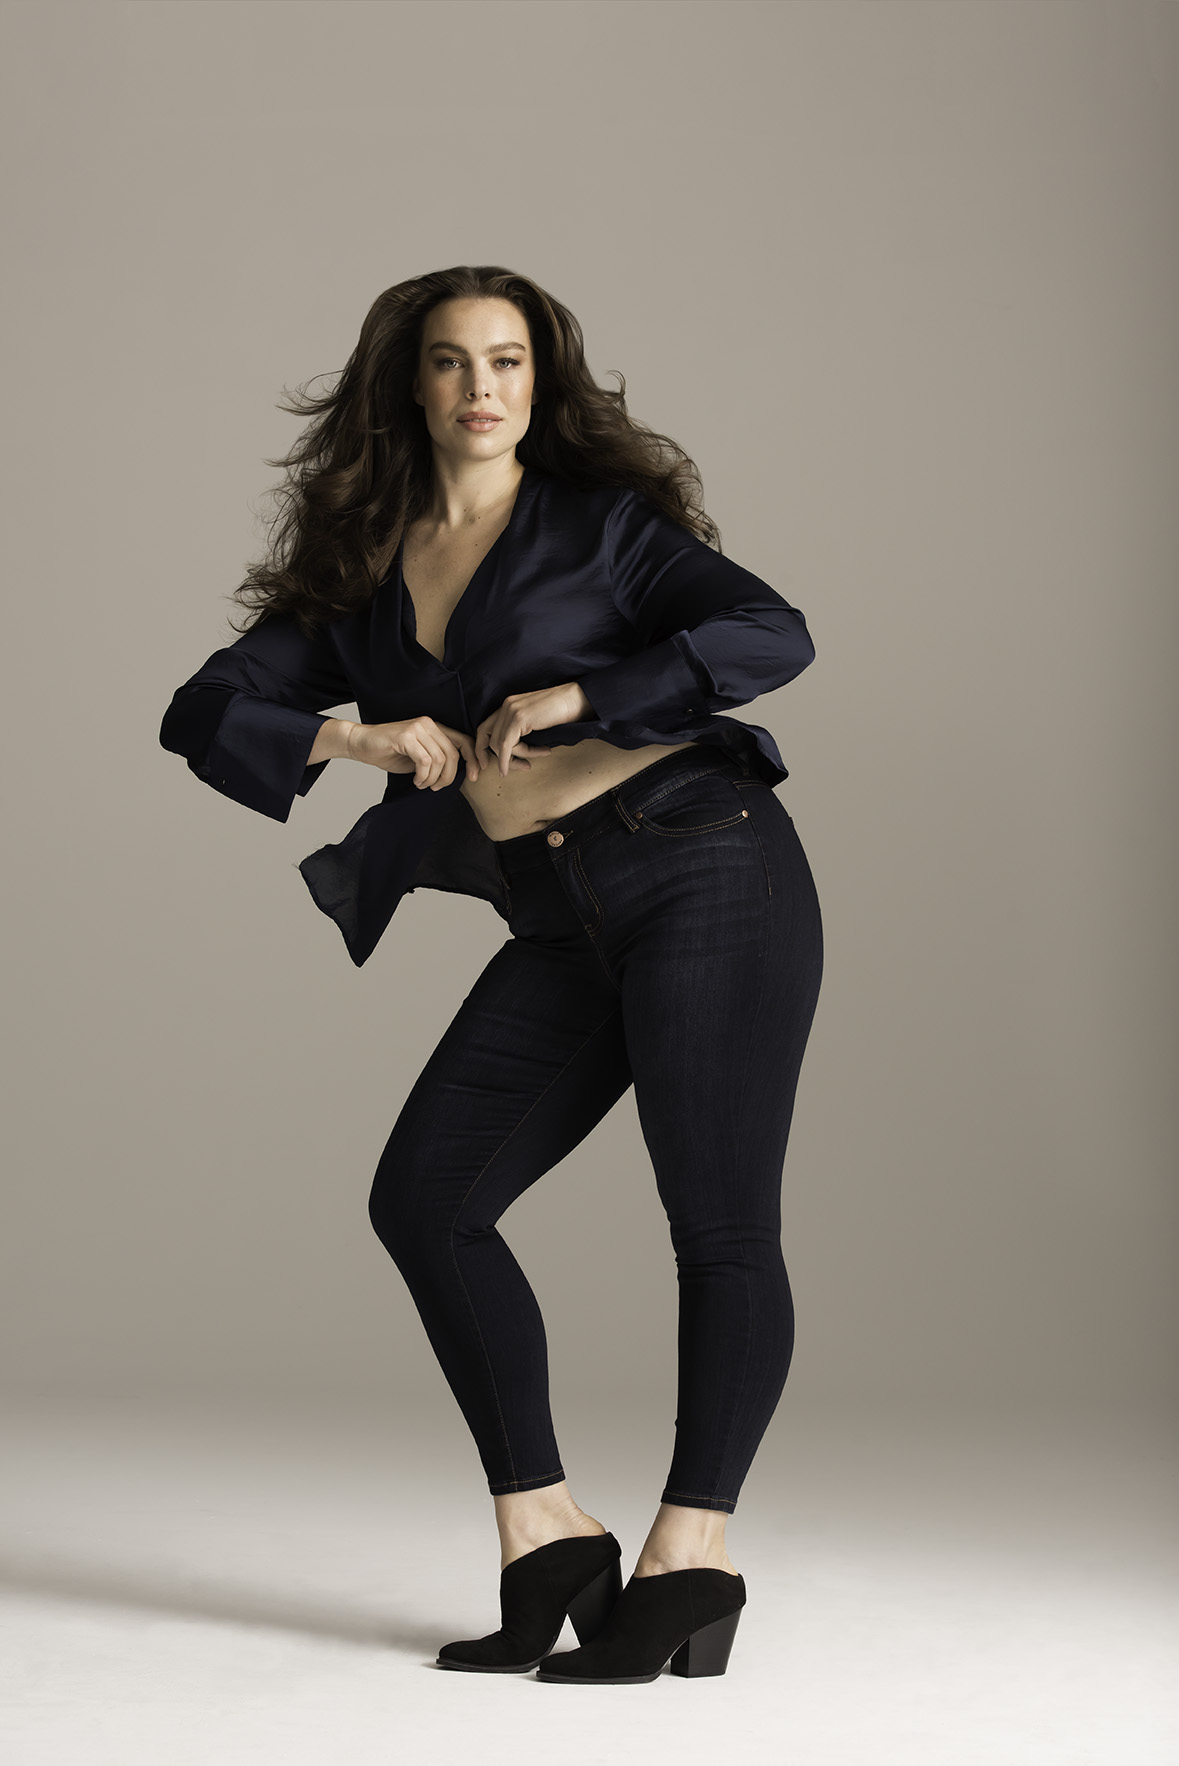 Dia& Co We Are All Icons Denim Campaign